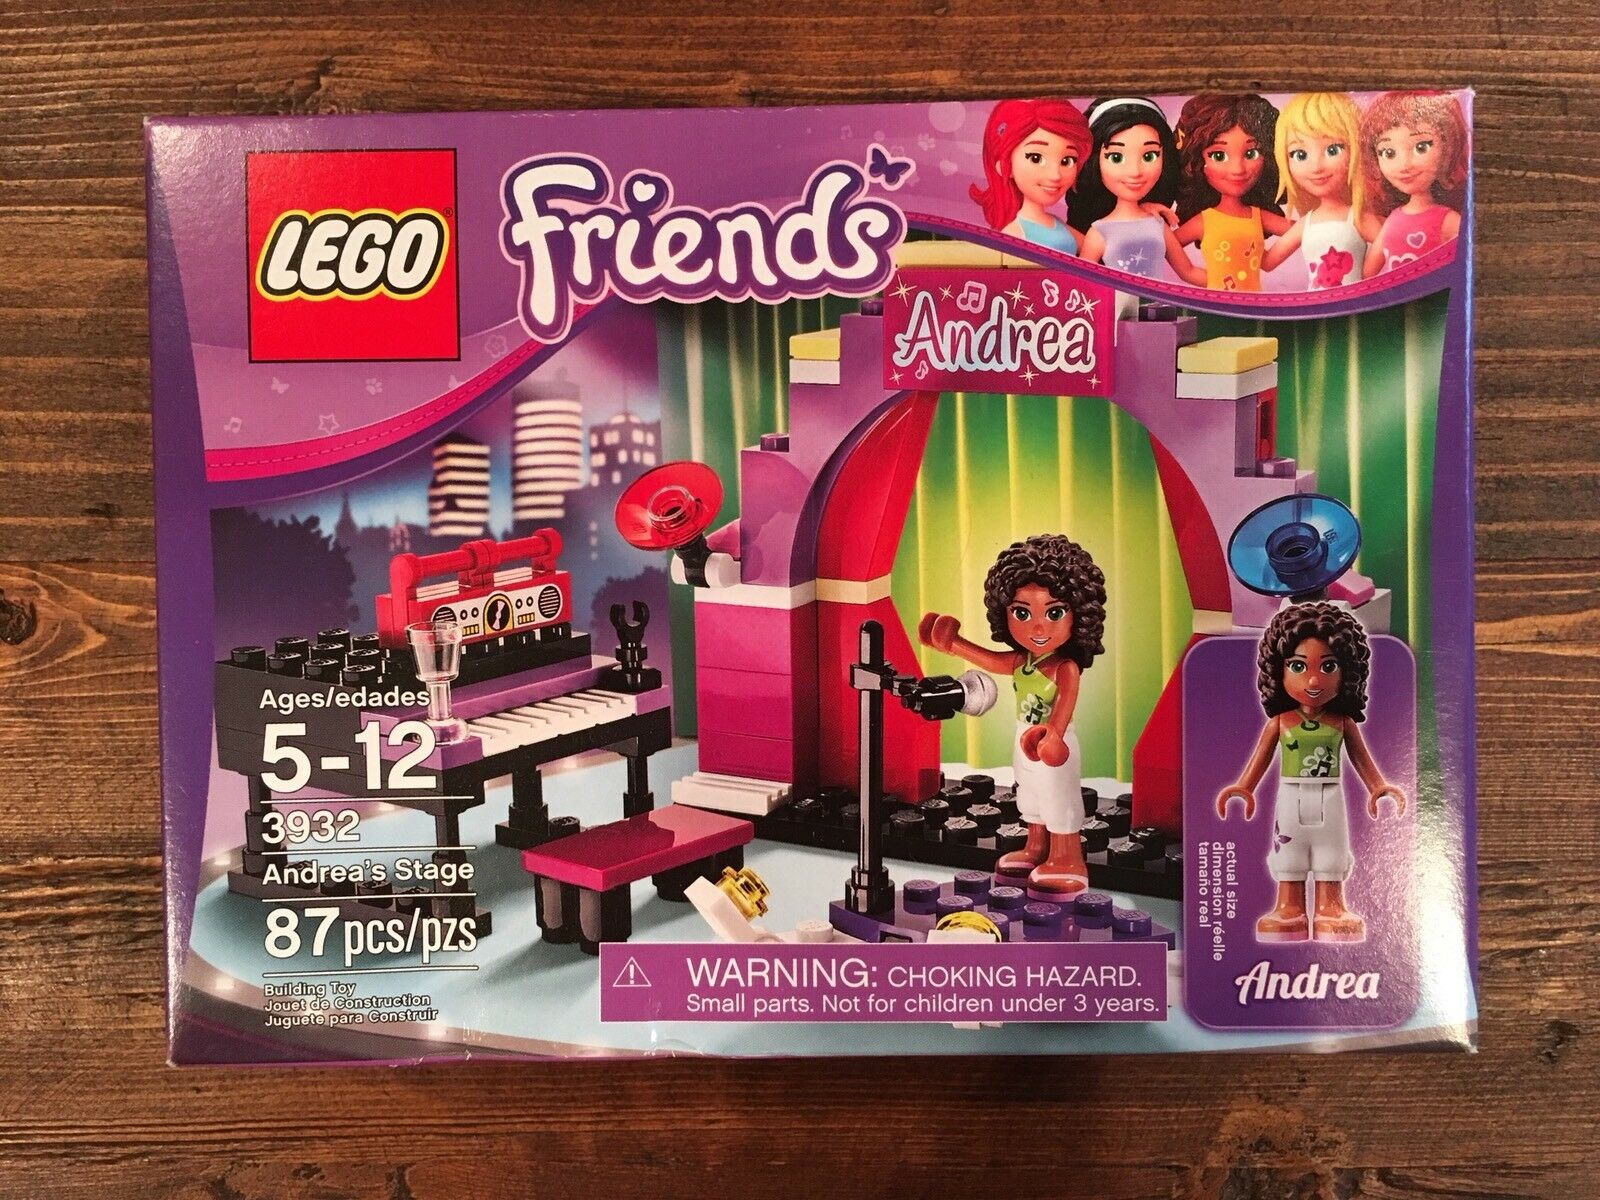 NEW NEW NEW Lego Friends Andrea's Stage (3932) Retired Set 1d7e7d